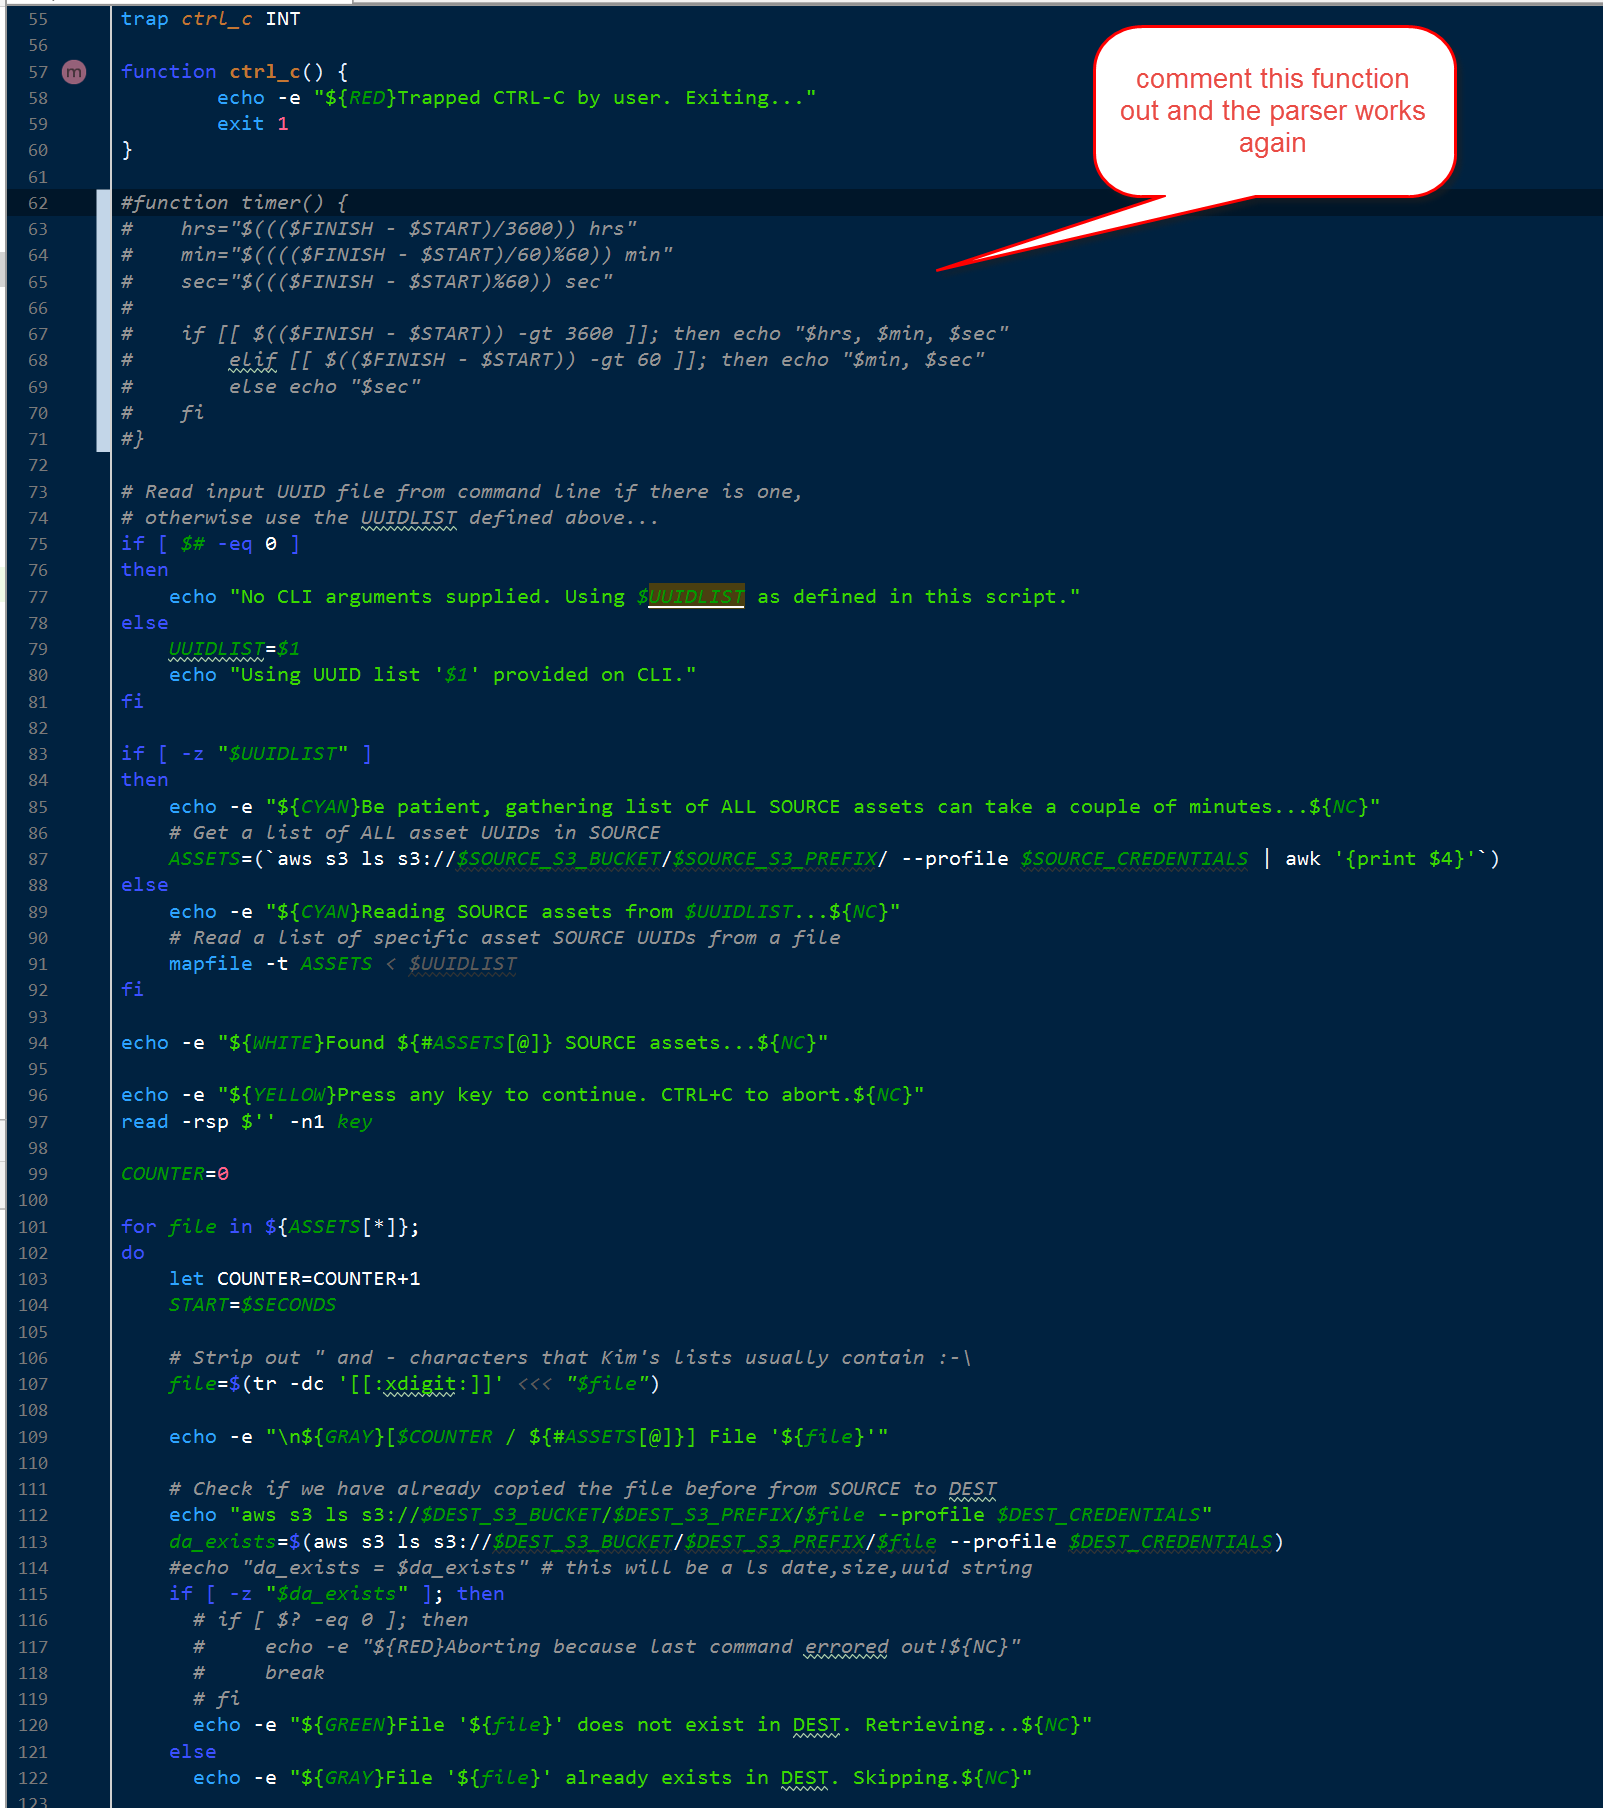 Bash editor color coding parser gets confused and out of whack